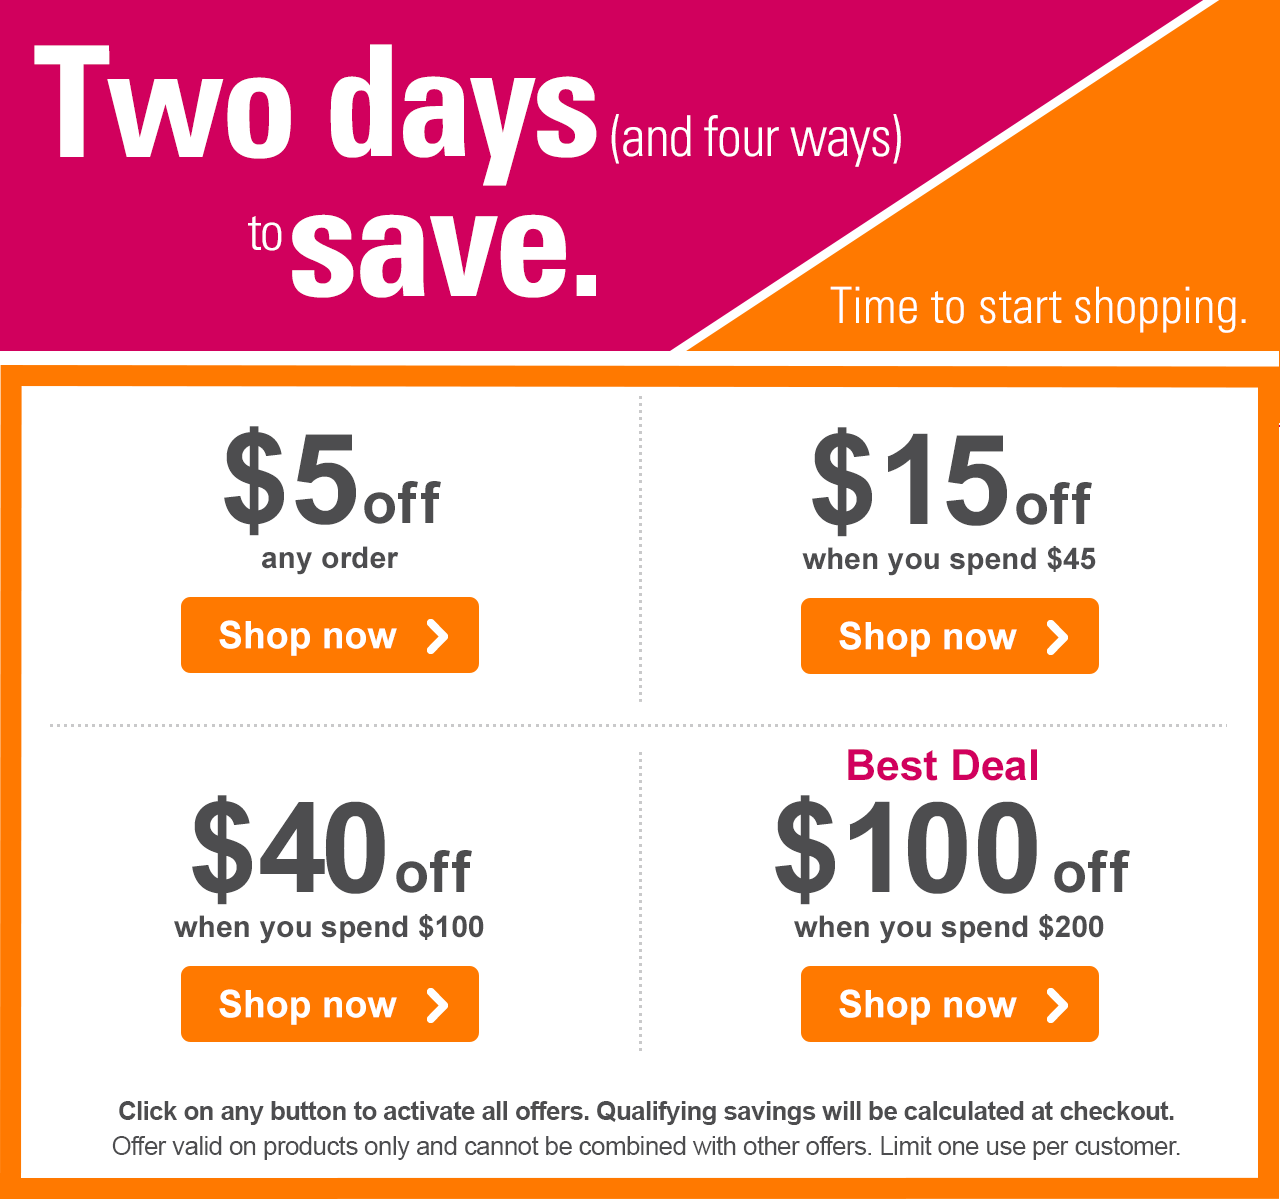 Two days (and four ways) to save. Time to start shopping.  $5 off any order Shop now › - $15 off when you spend $45 Shop now › - $40 off when you spend $100 Shop now › - Best Deal - $100 off when you spend $200 Shop now › Click on any button to activate all offers. Qualifying savings will be calculated at checkout. Offer valid on products only and cannot be combined with other offers. Limit one use per customer.